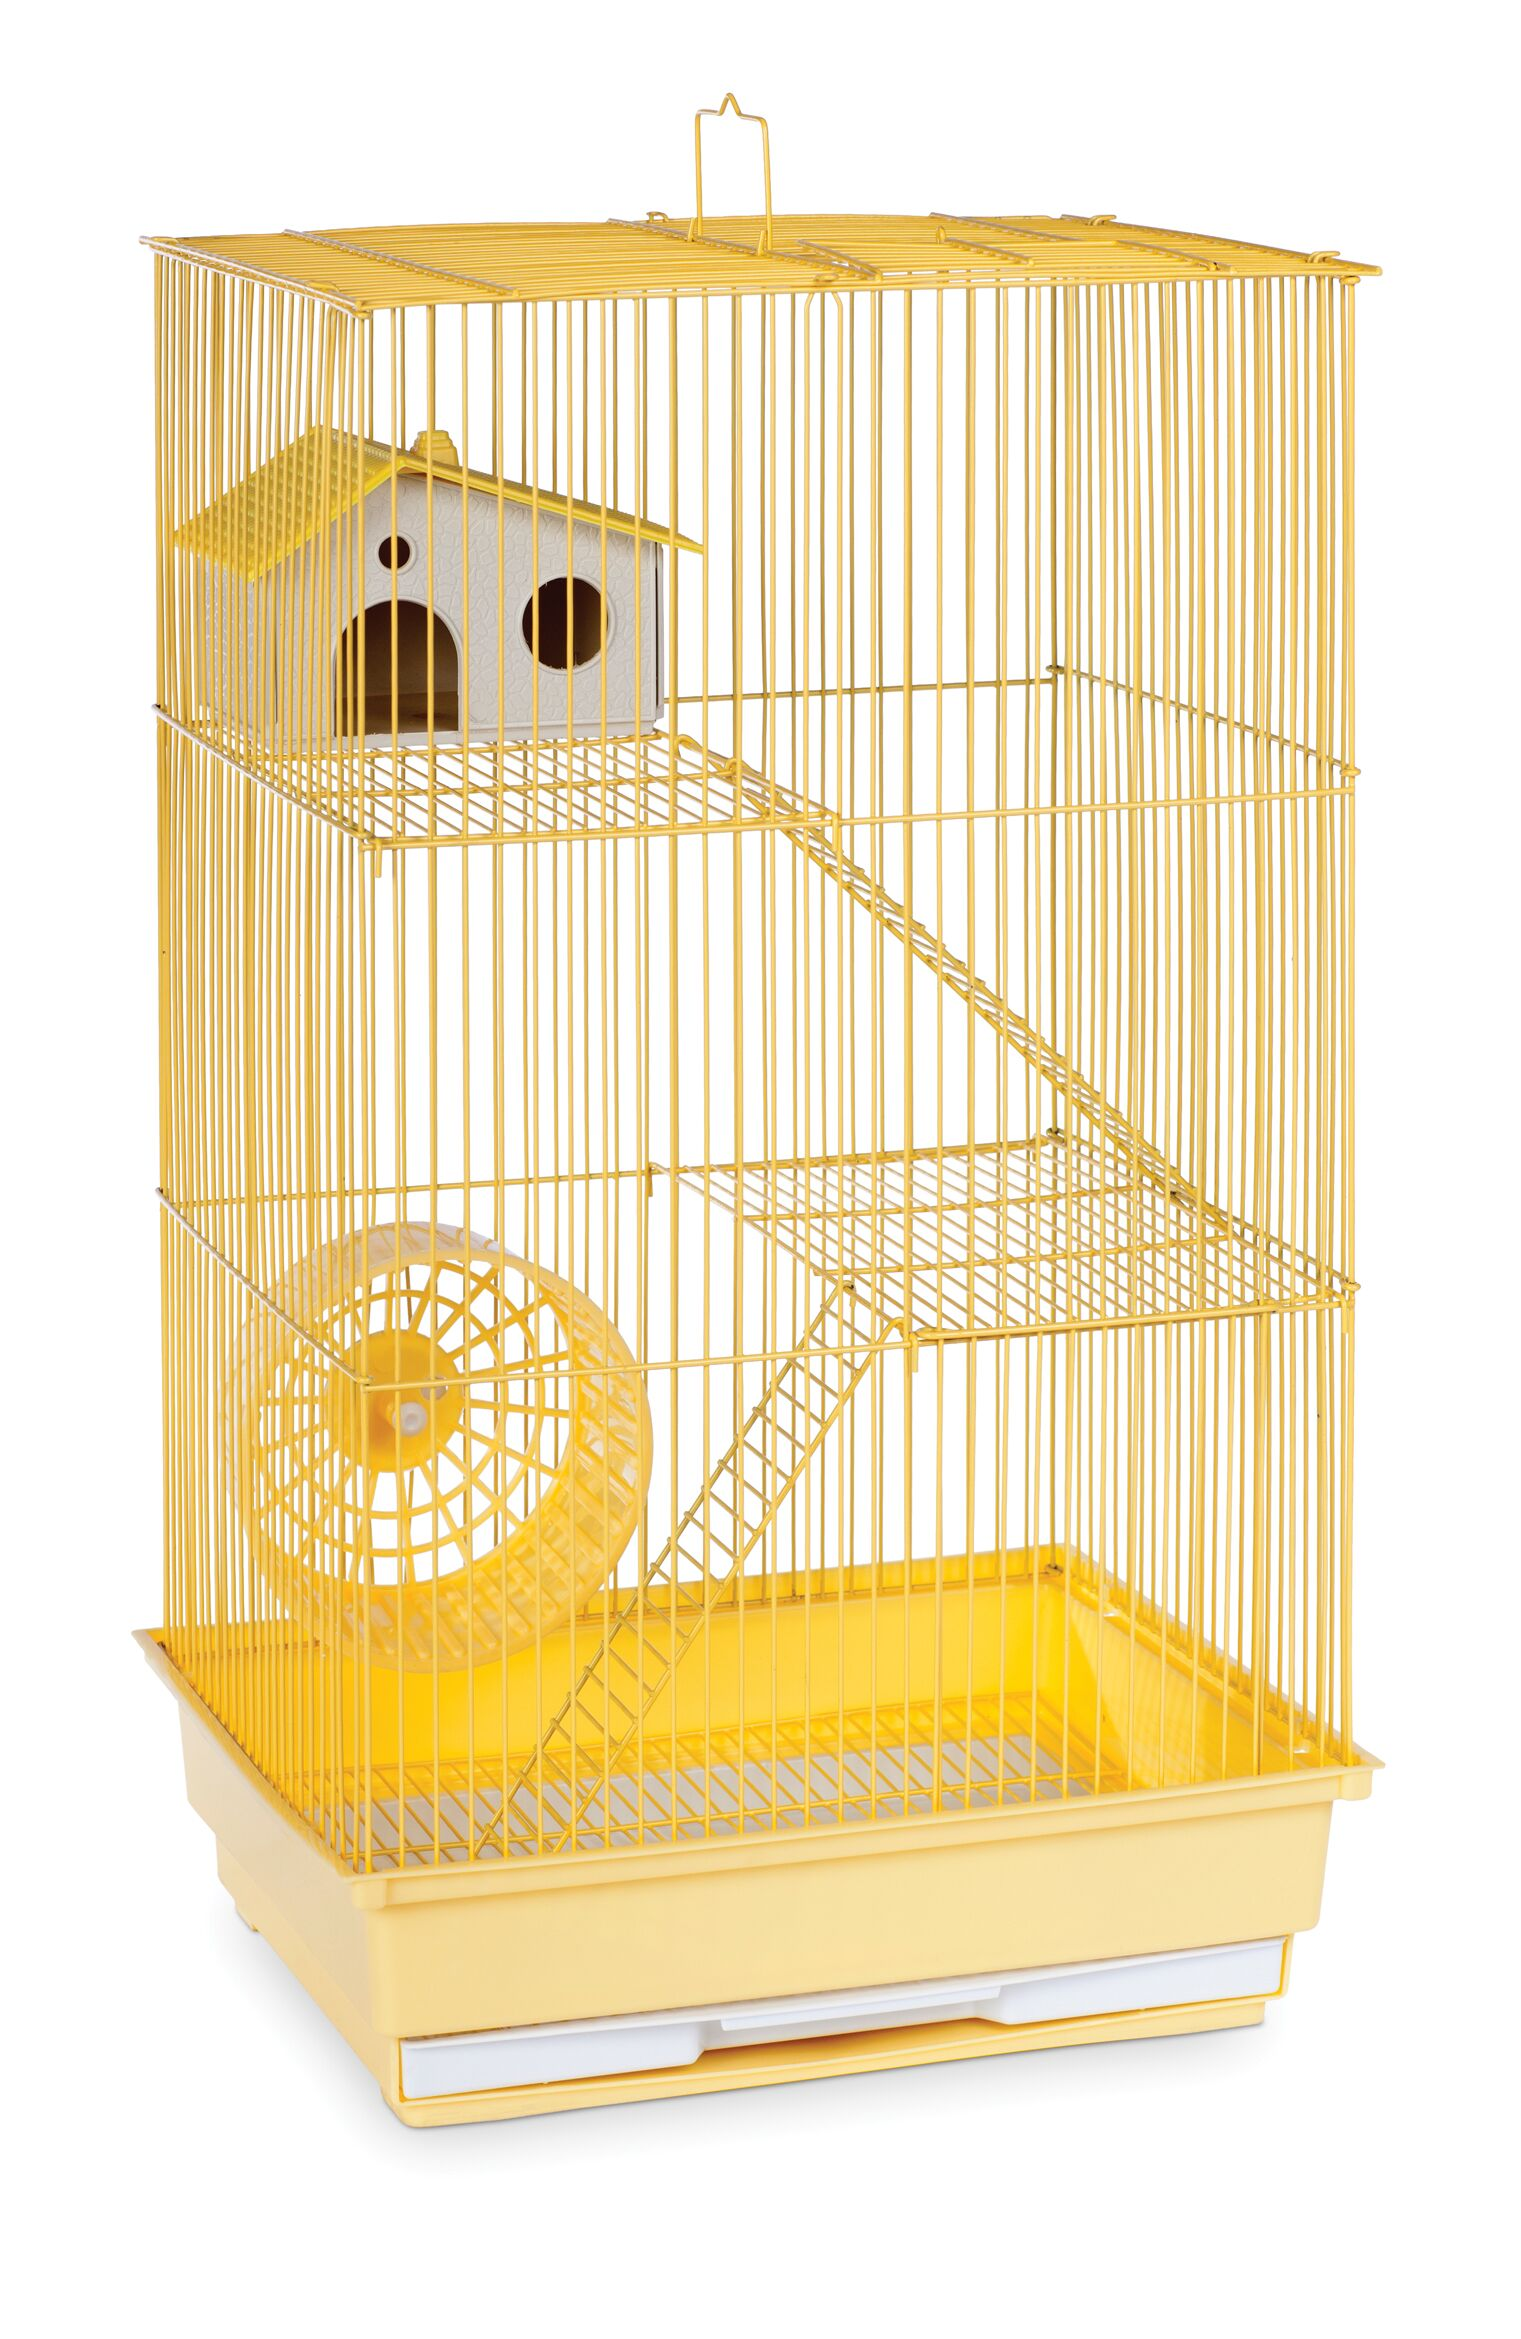 Crystal 3-Story Hamster/Gerbil Home-Mint Green Color: Yellow